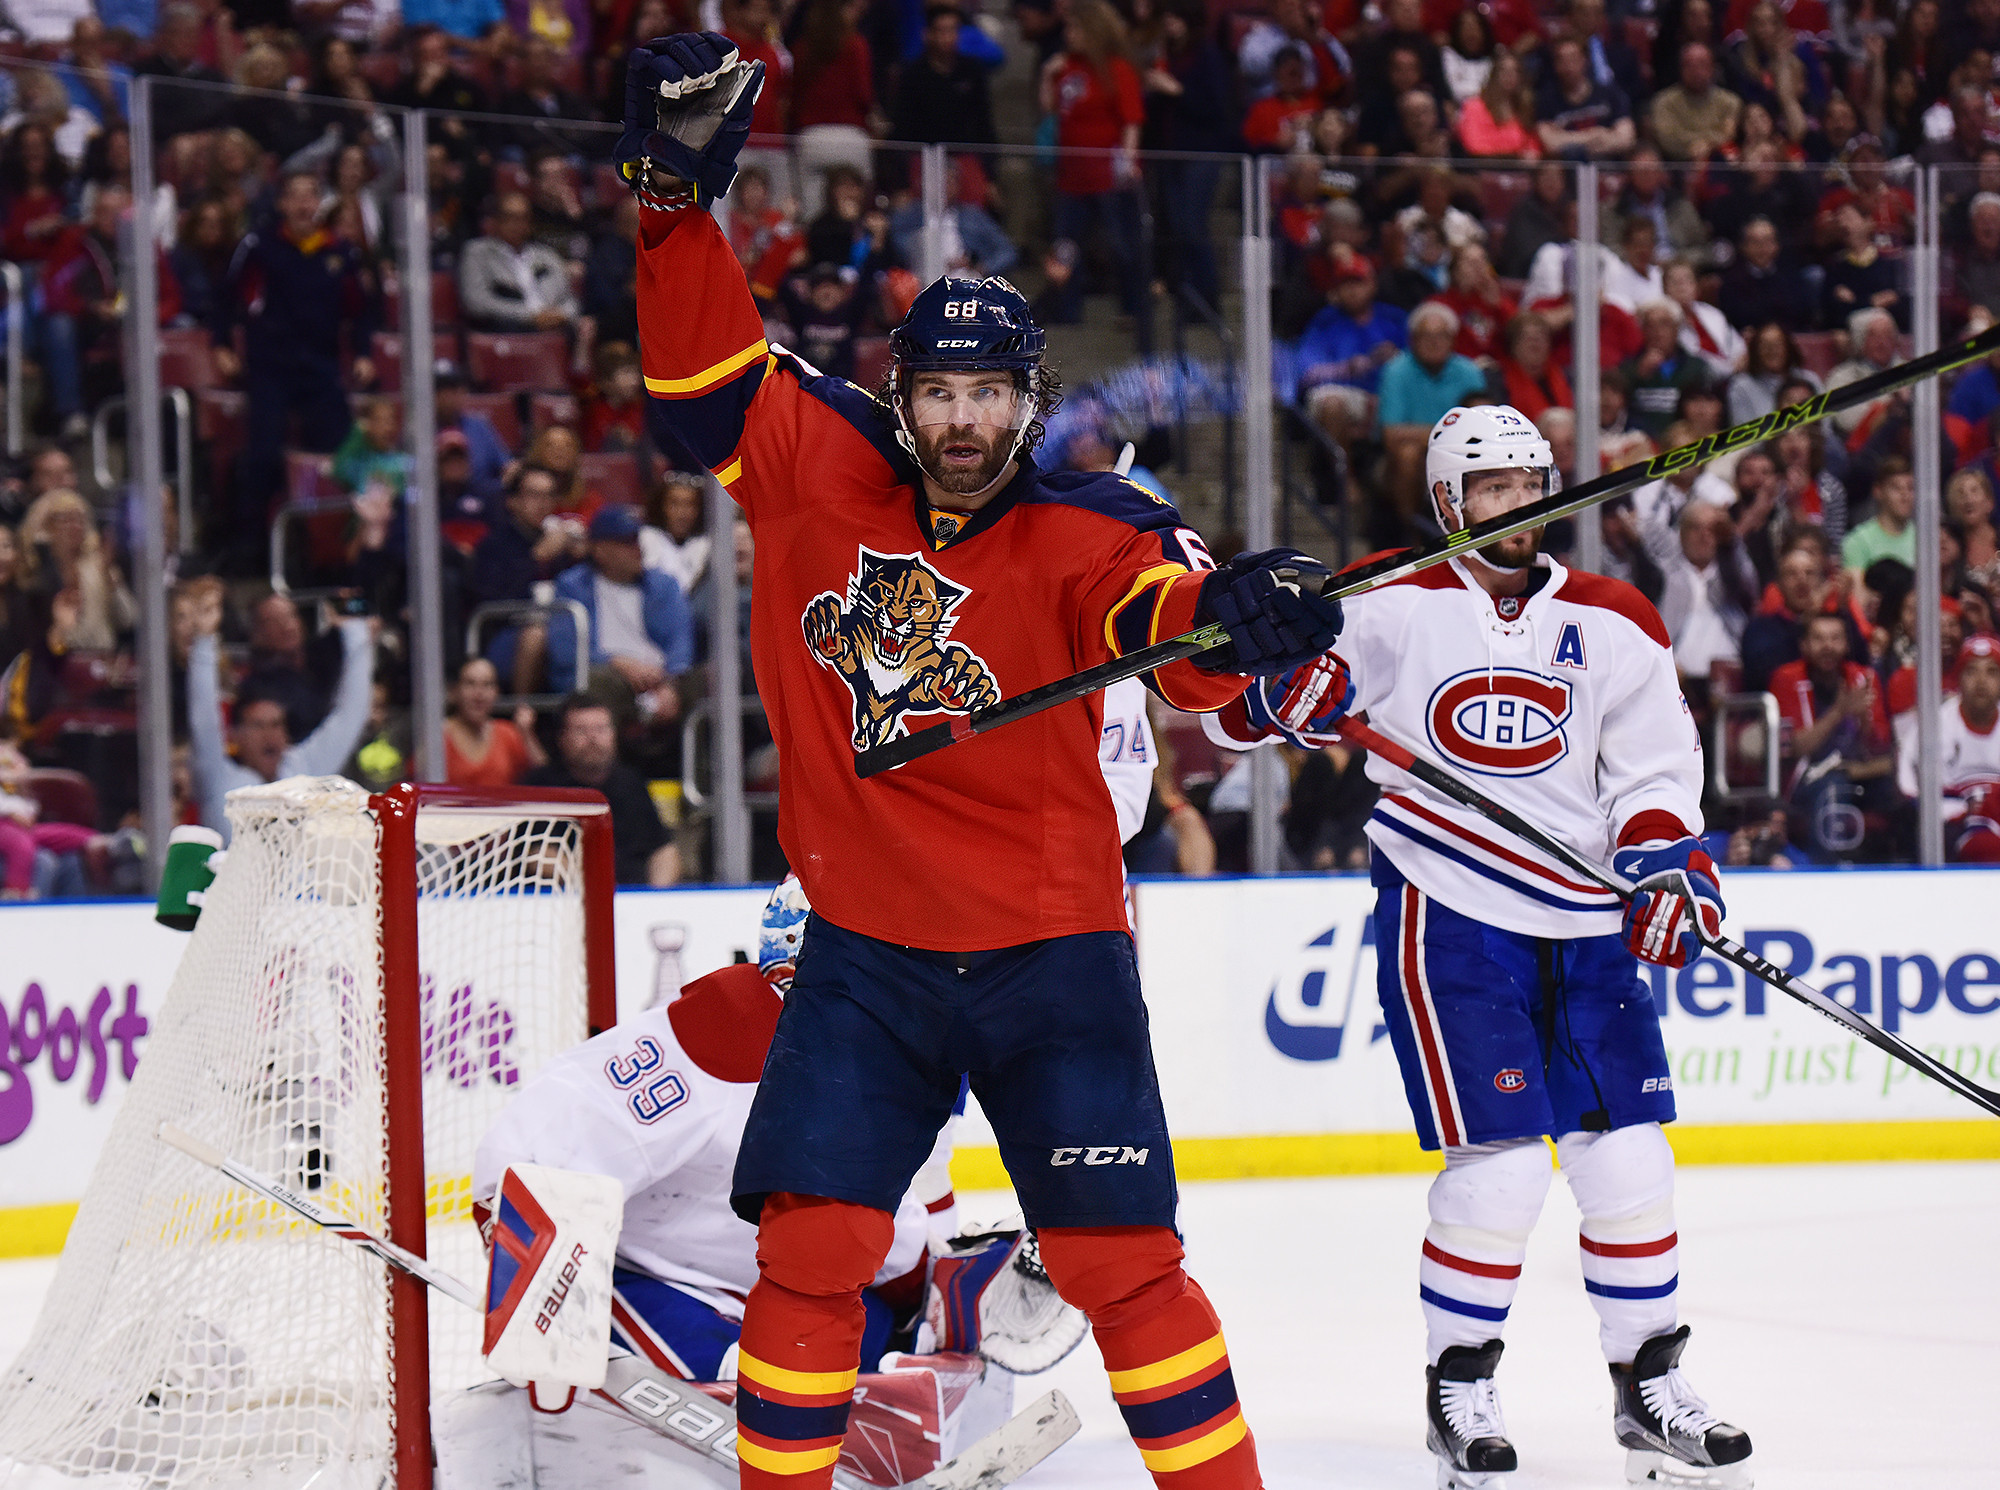 Sfl-panthers-re-sign-jaromir-jagr-to-one-year-contract-20160505